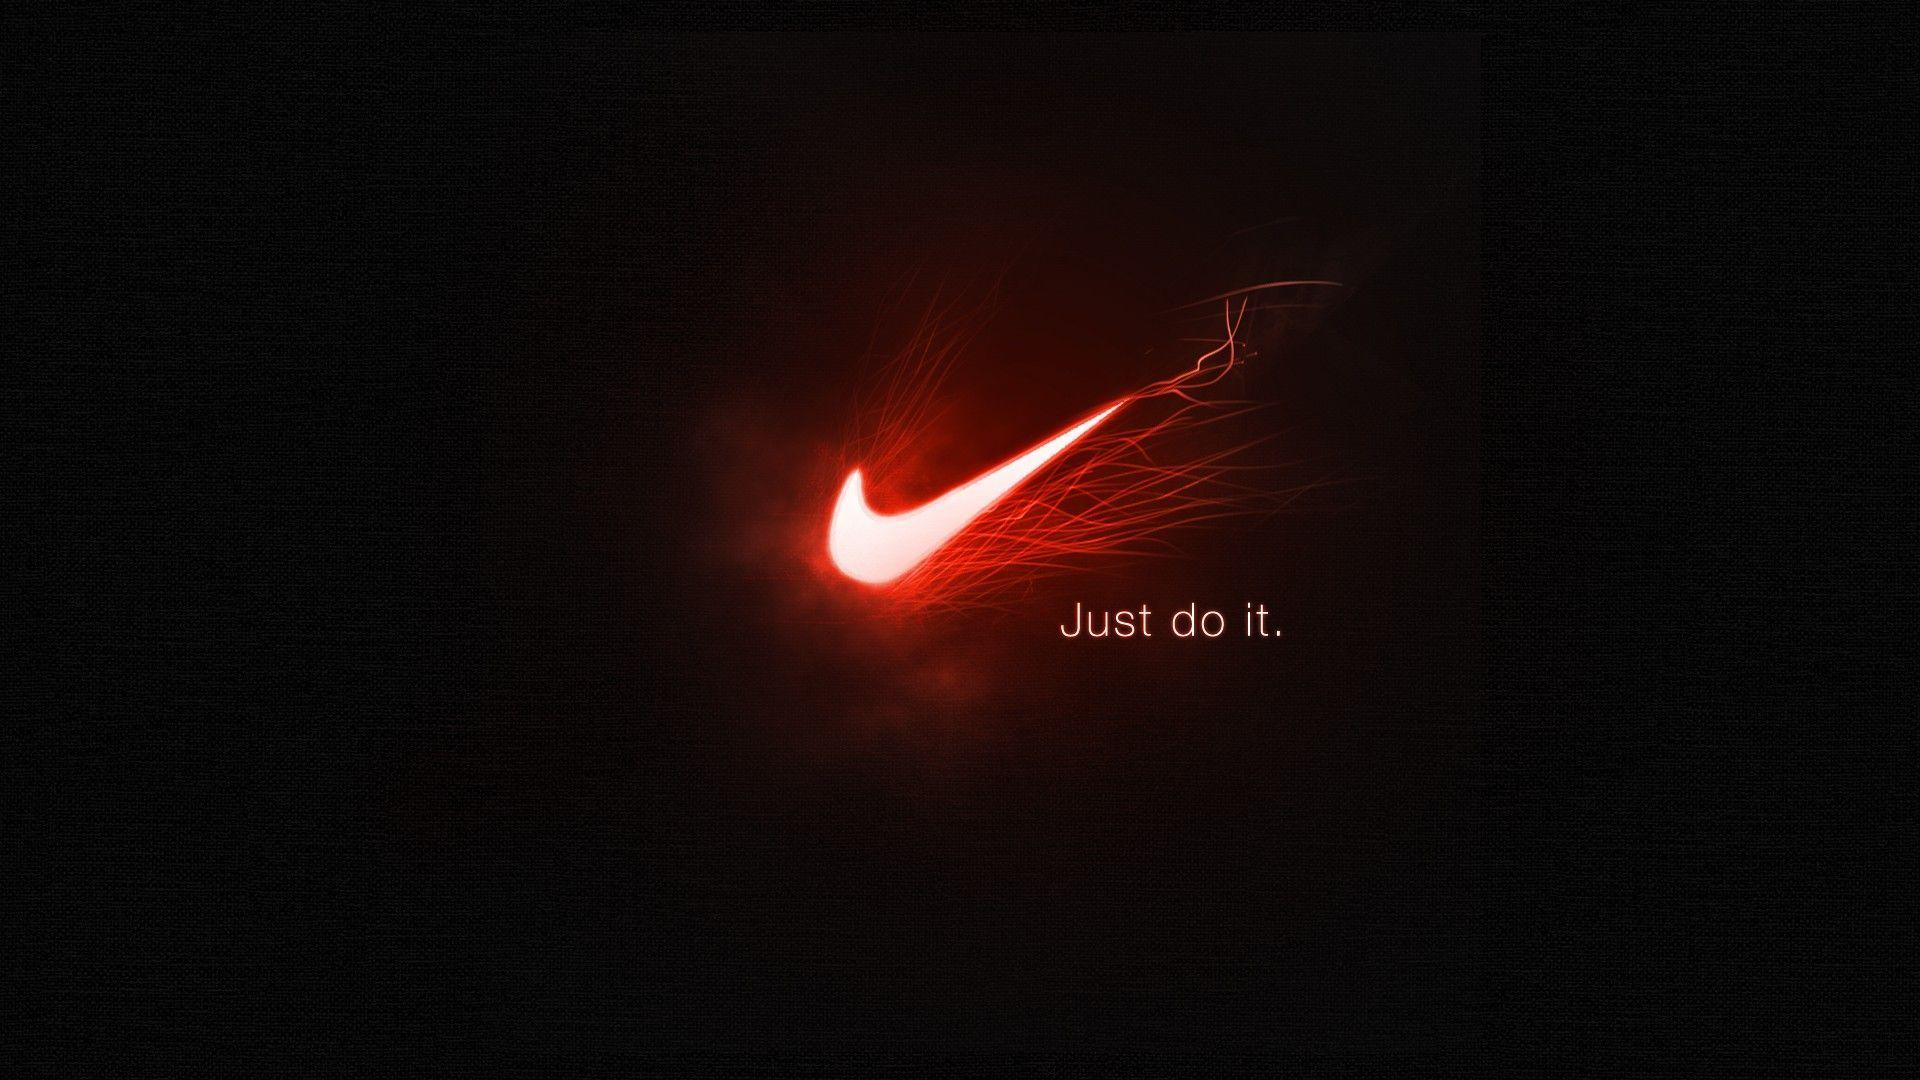 Images For Nike Just Do It Wallpaper Iphone